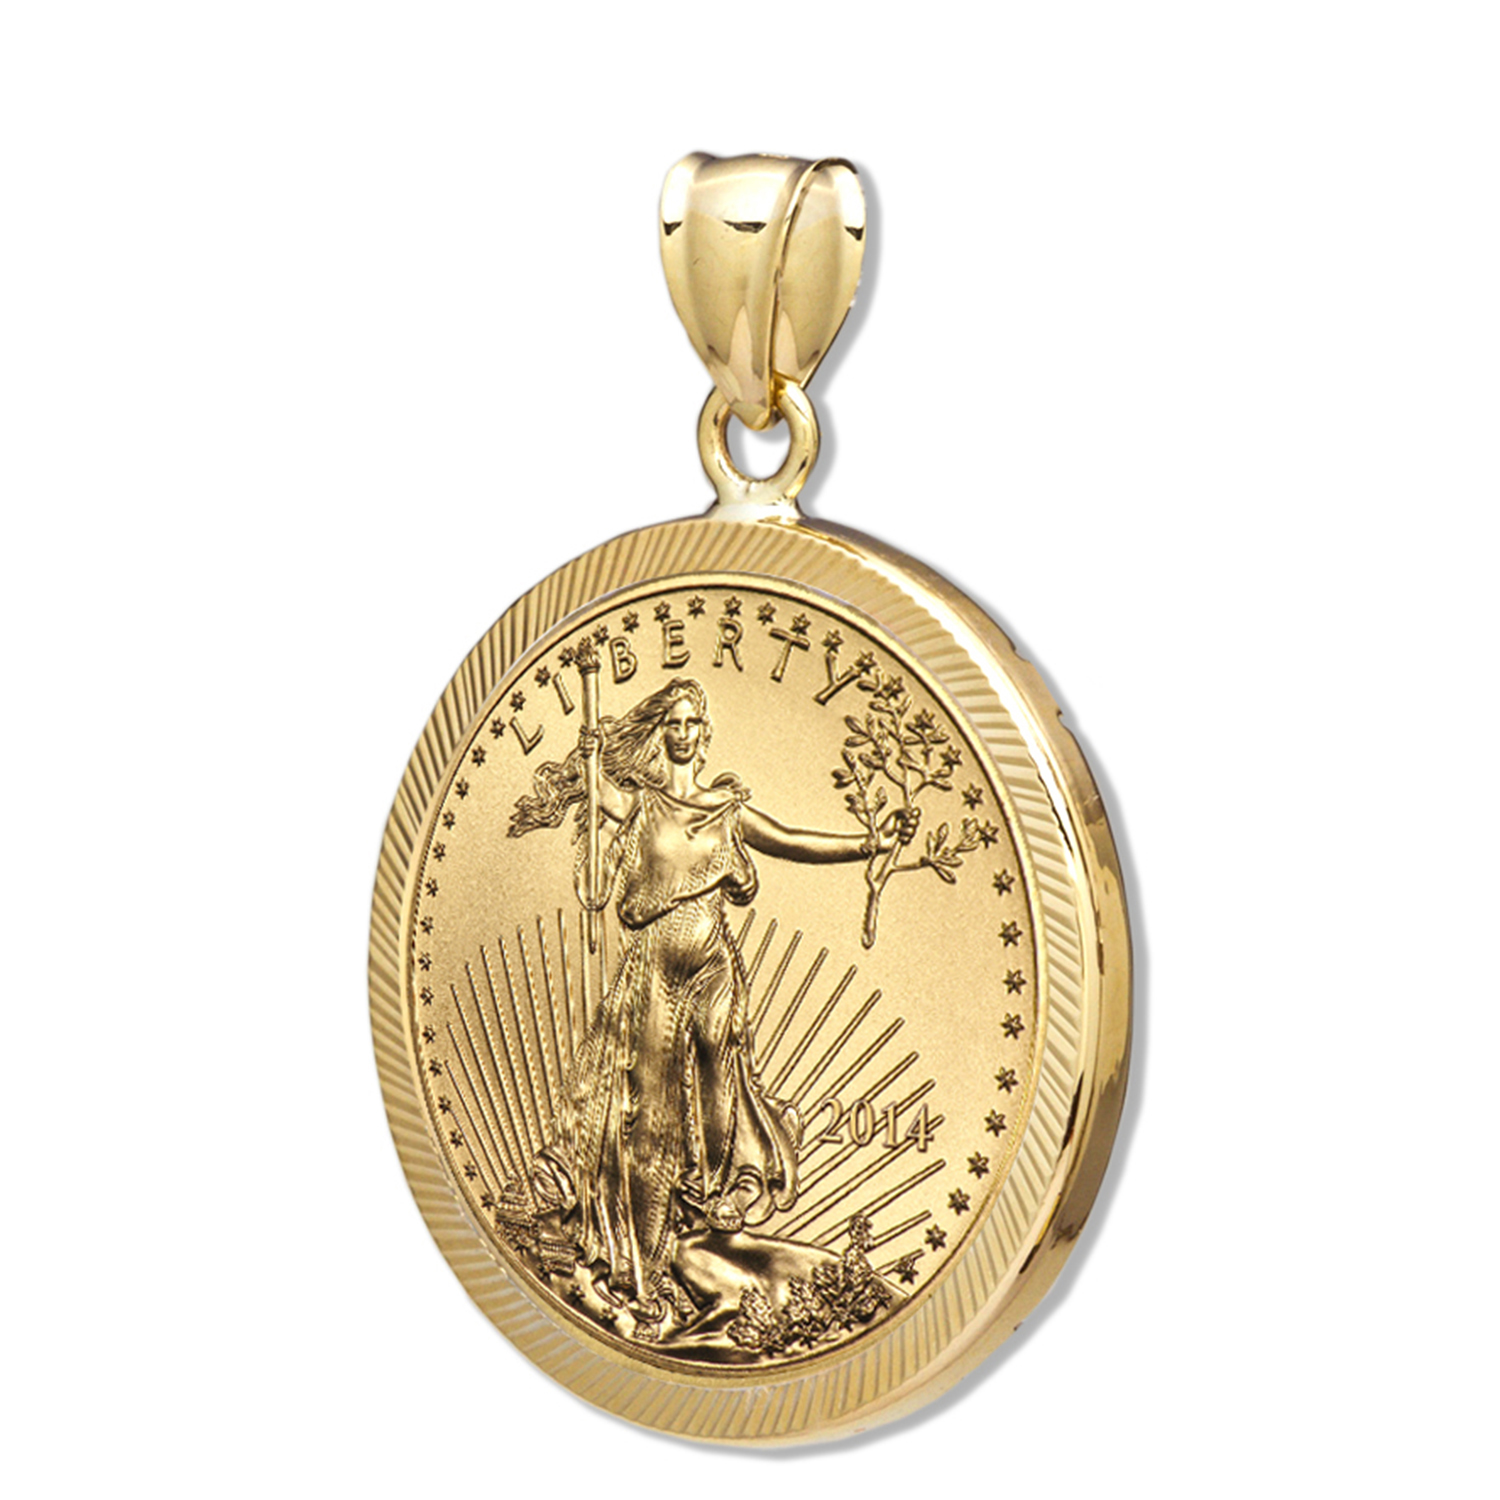 2014 1 oz Gold Eagle Pendant (Diamond-Prong Bezel)